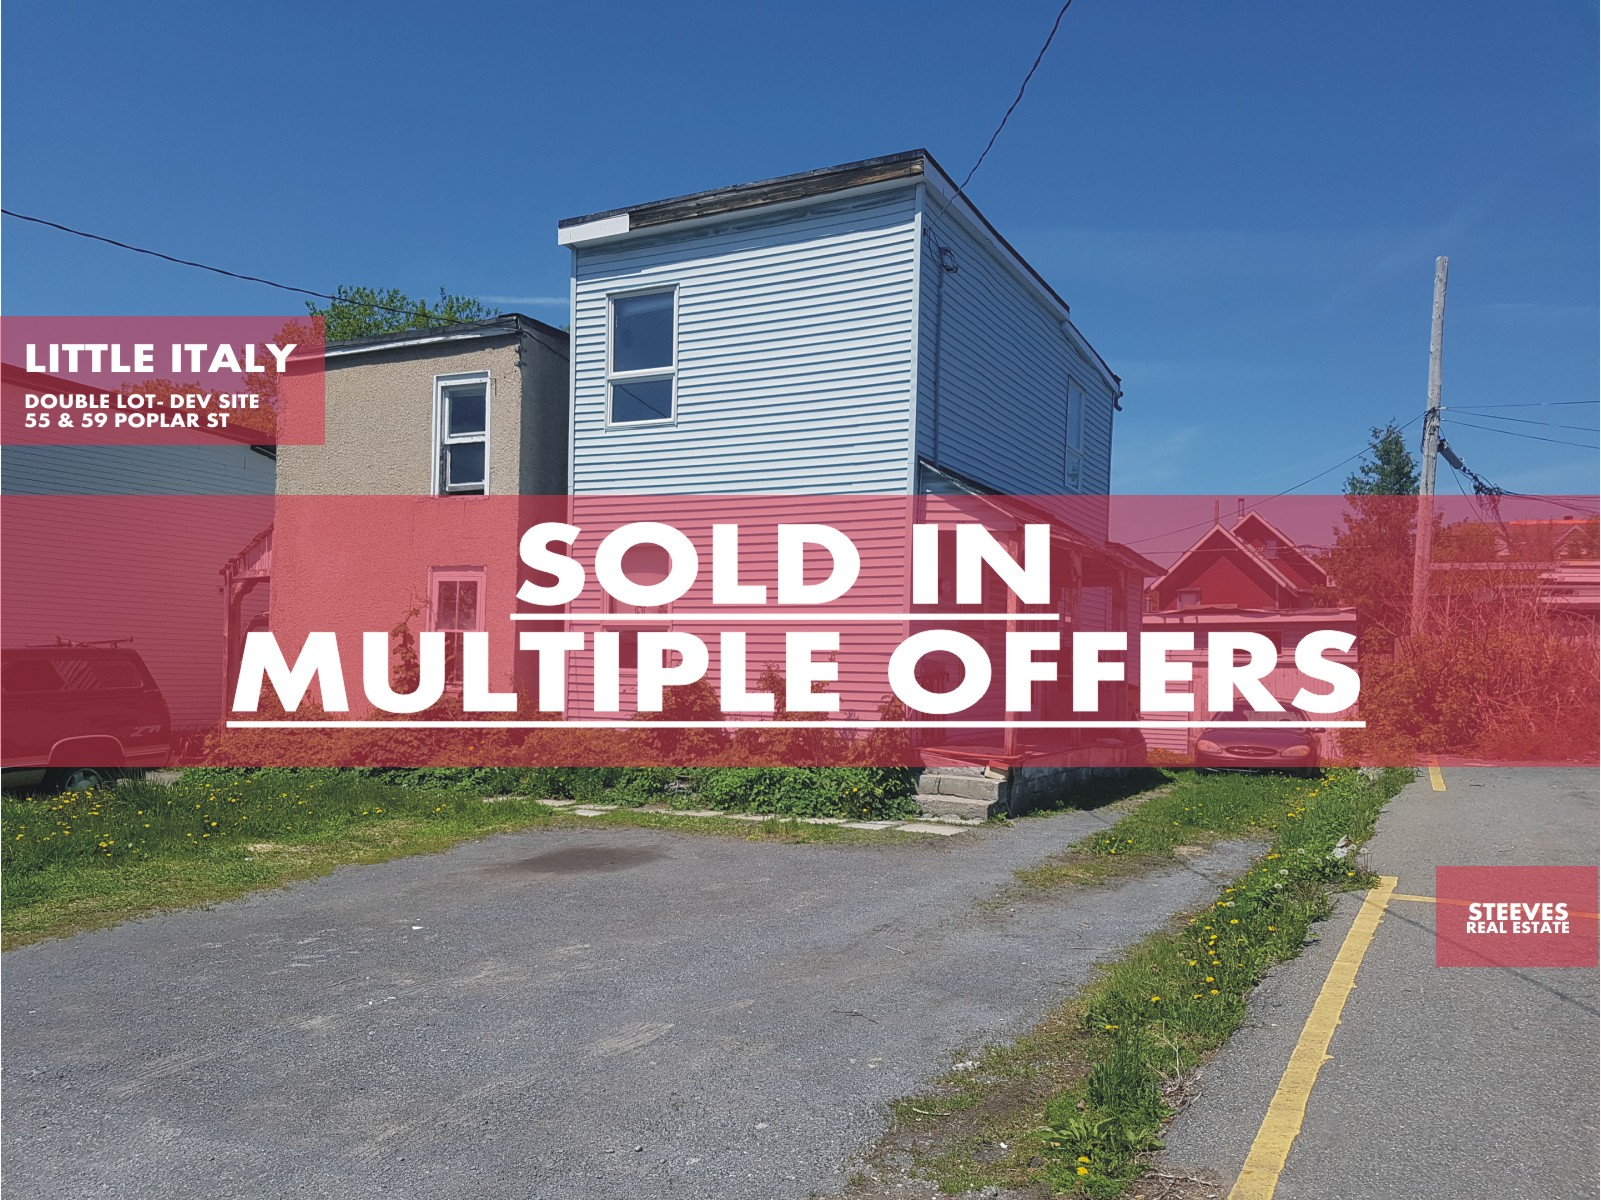 **SOLD**  – 55 & 59 POPLAR ST – DOUBLE LOT – LITTLE ITALY